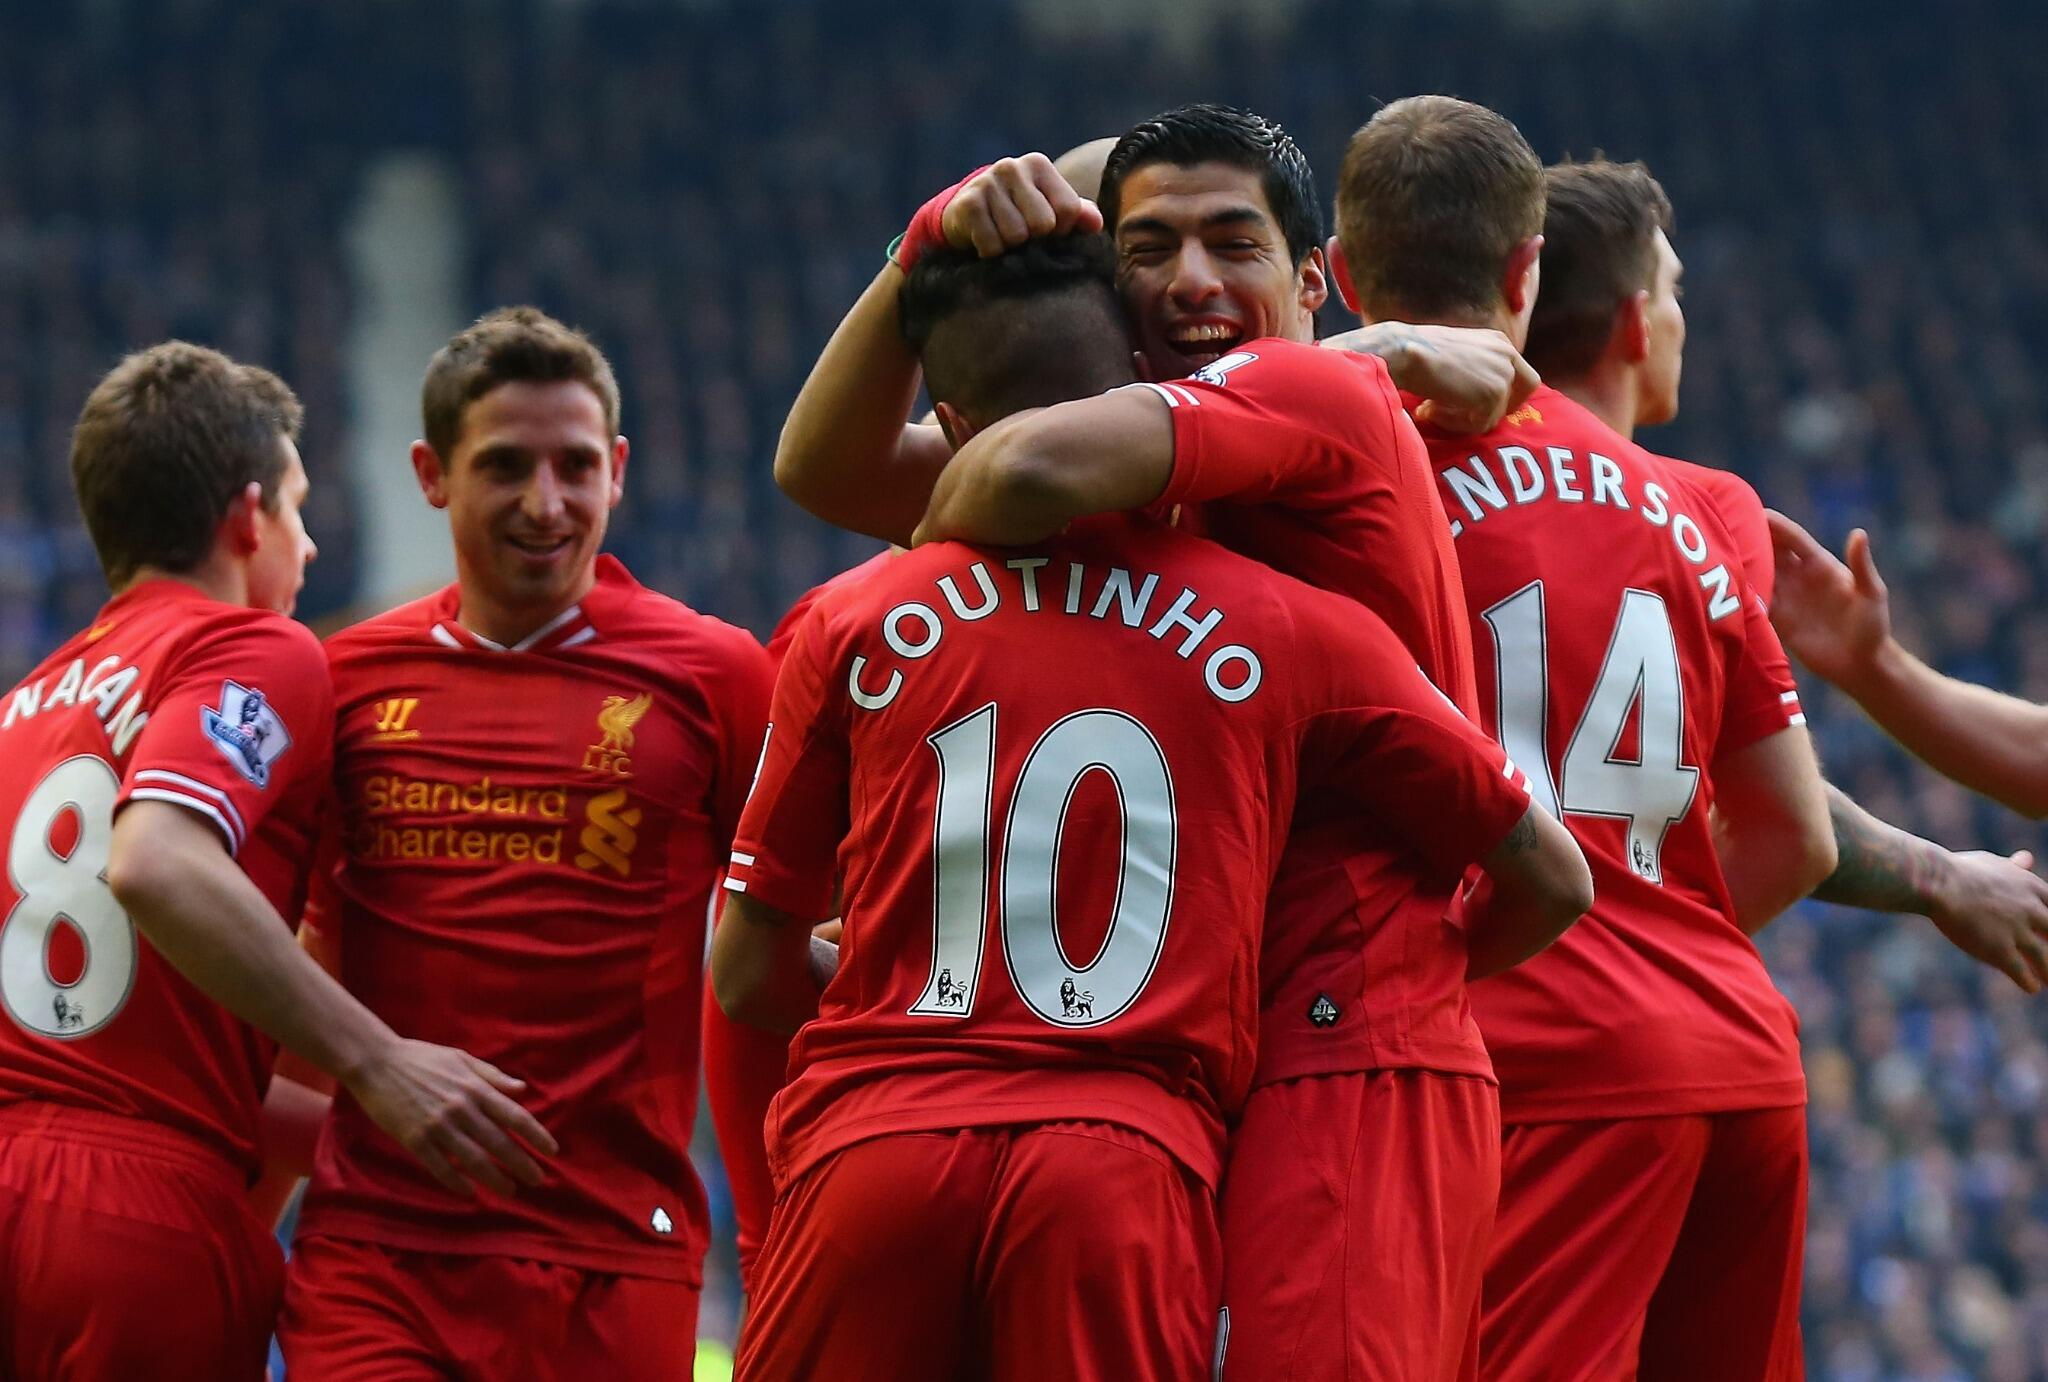 Luis Suarez gives Coutinho noogies after scoring v Everton